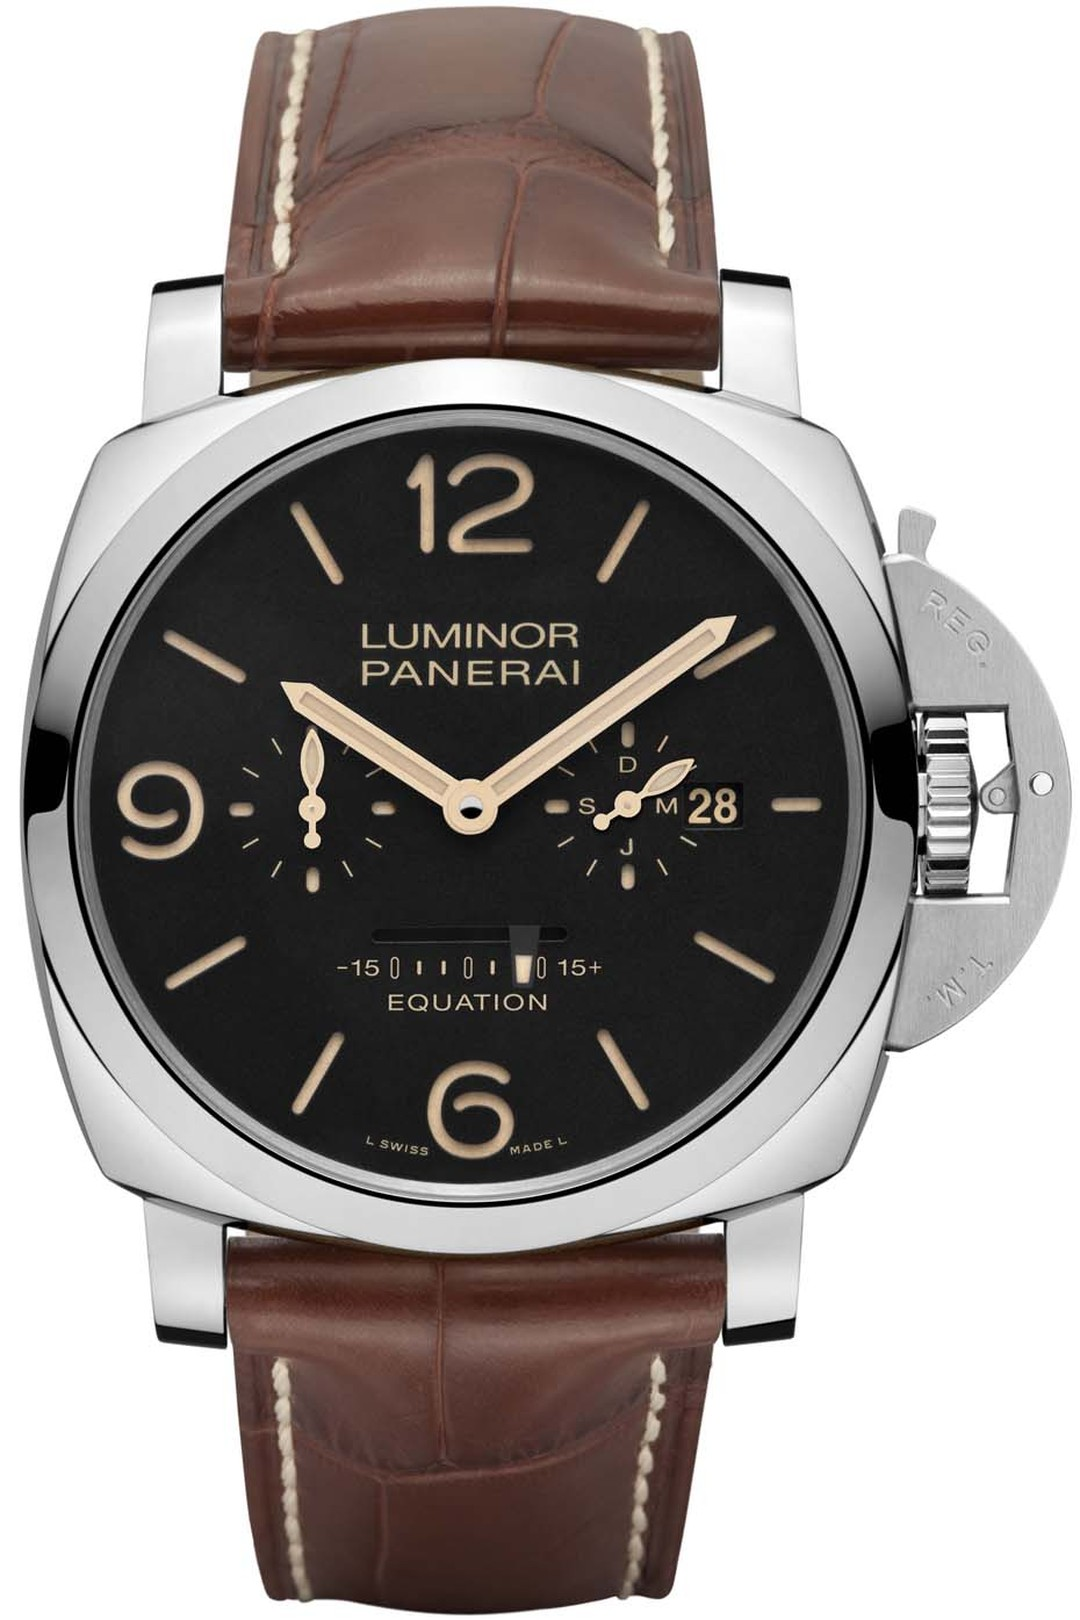 Panerai Luminor 1950 watch with equation of time indication was unveiled at the SIHH watch salon this year. An equation of time complication indicates the difference between solar time and conventional mean time. Panerai has opted for a linear indicator o